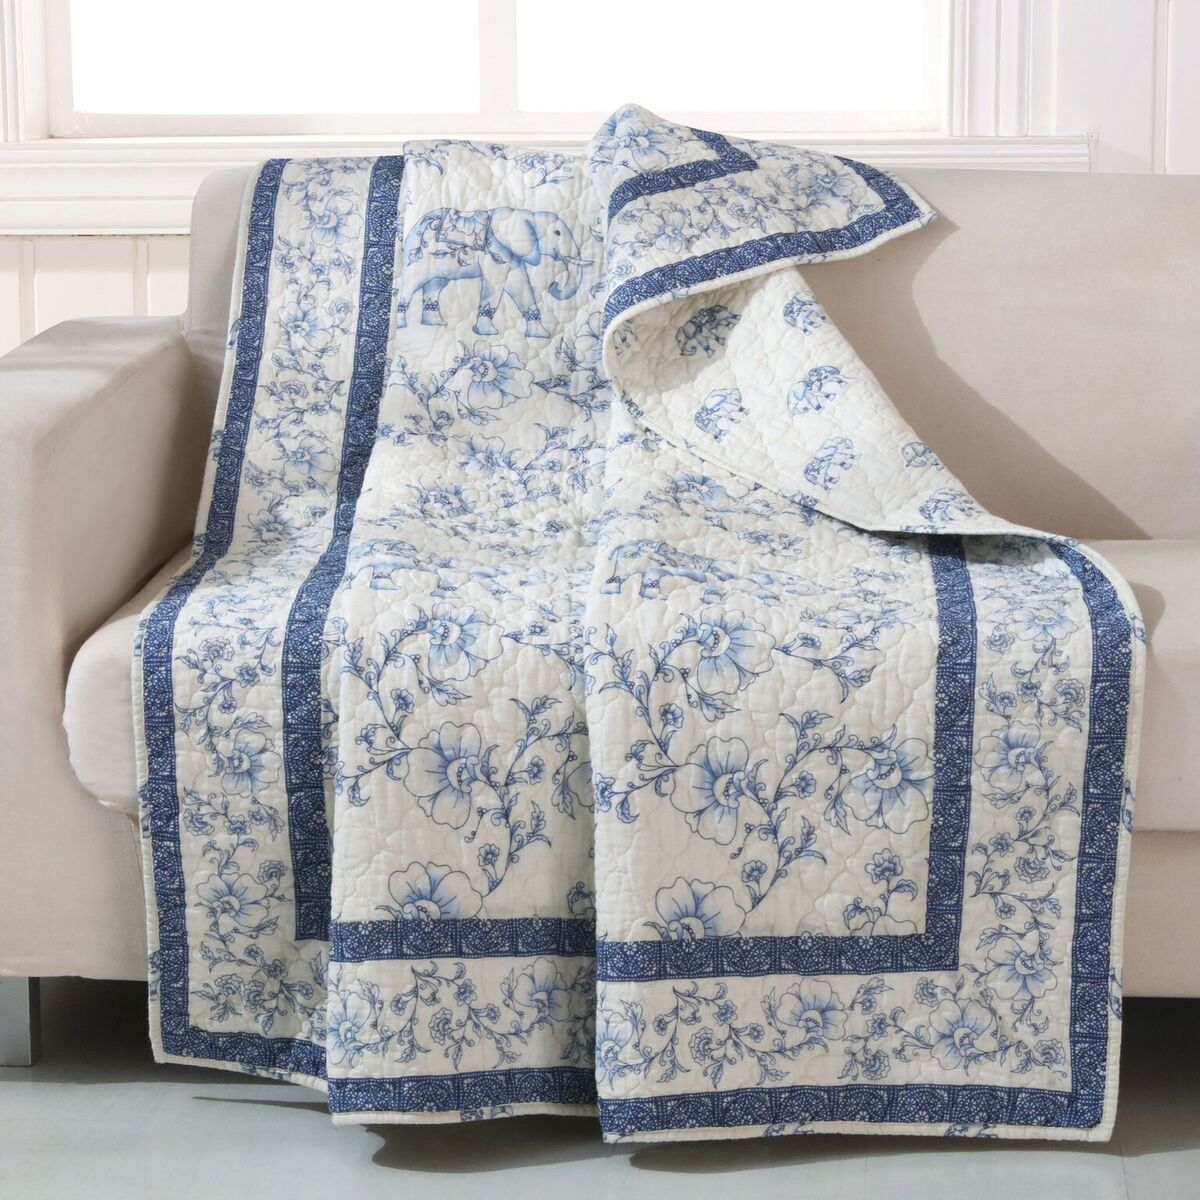 Saffi Blue Accessory Throw